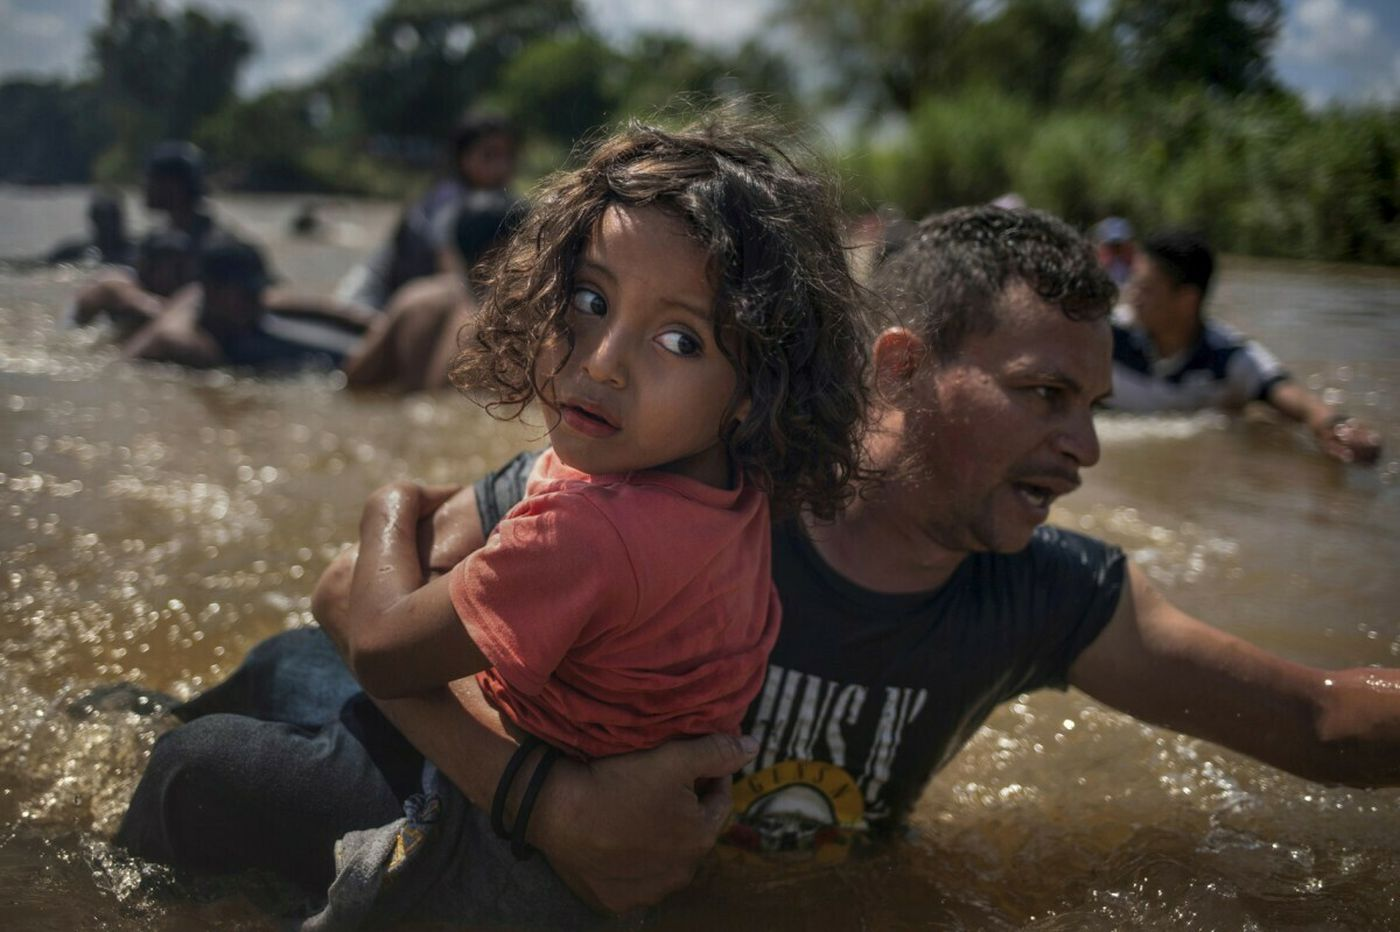 Climate denier Trump can't handle the truth about why Central Americans flock to U.S. | Will Bunch